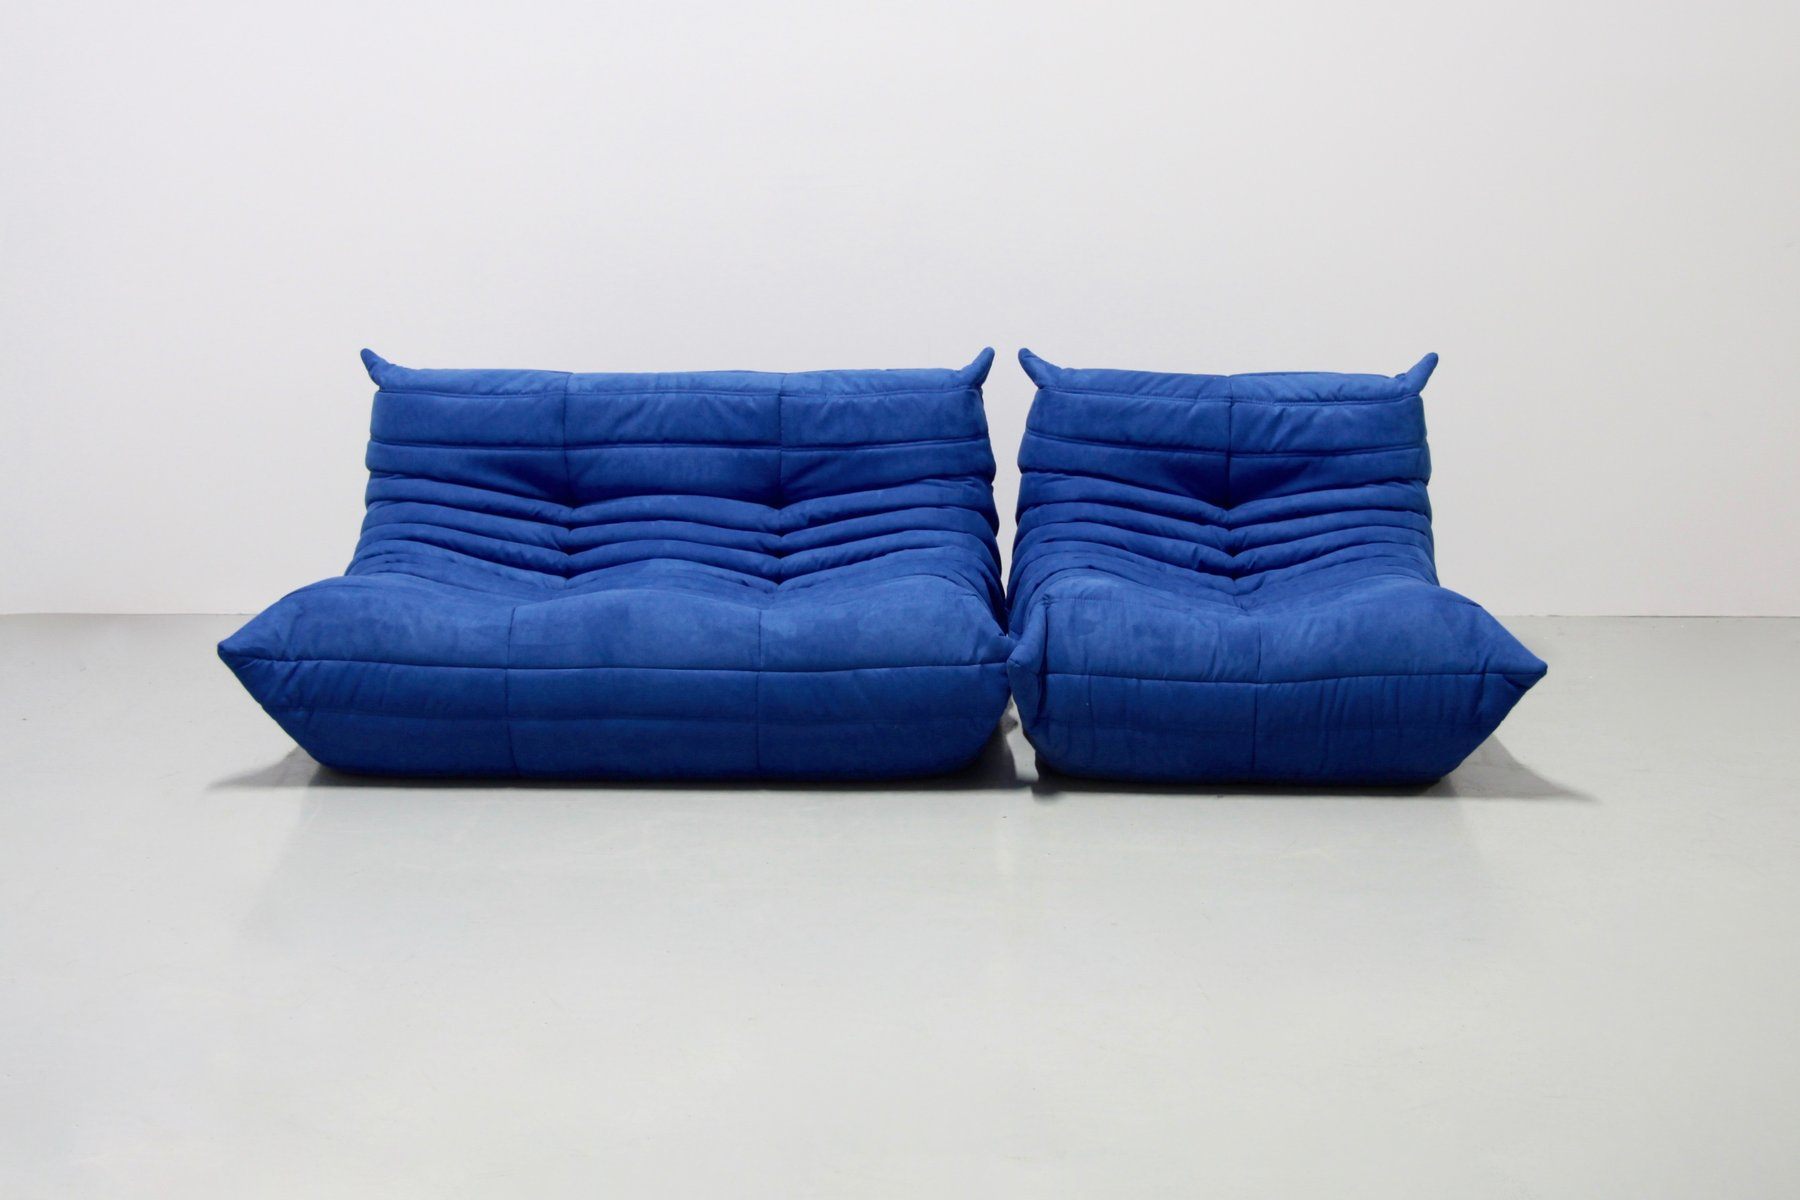 vintage blue microfibre togo sofa set by michel ducaroy for ligne roset 1970s for sale at pamono. Black Bedroom Furniture Sets. Home Design Ideas